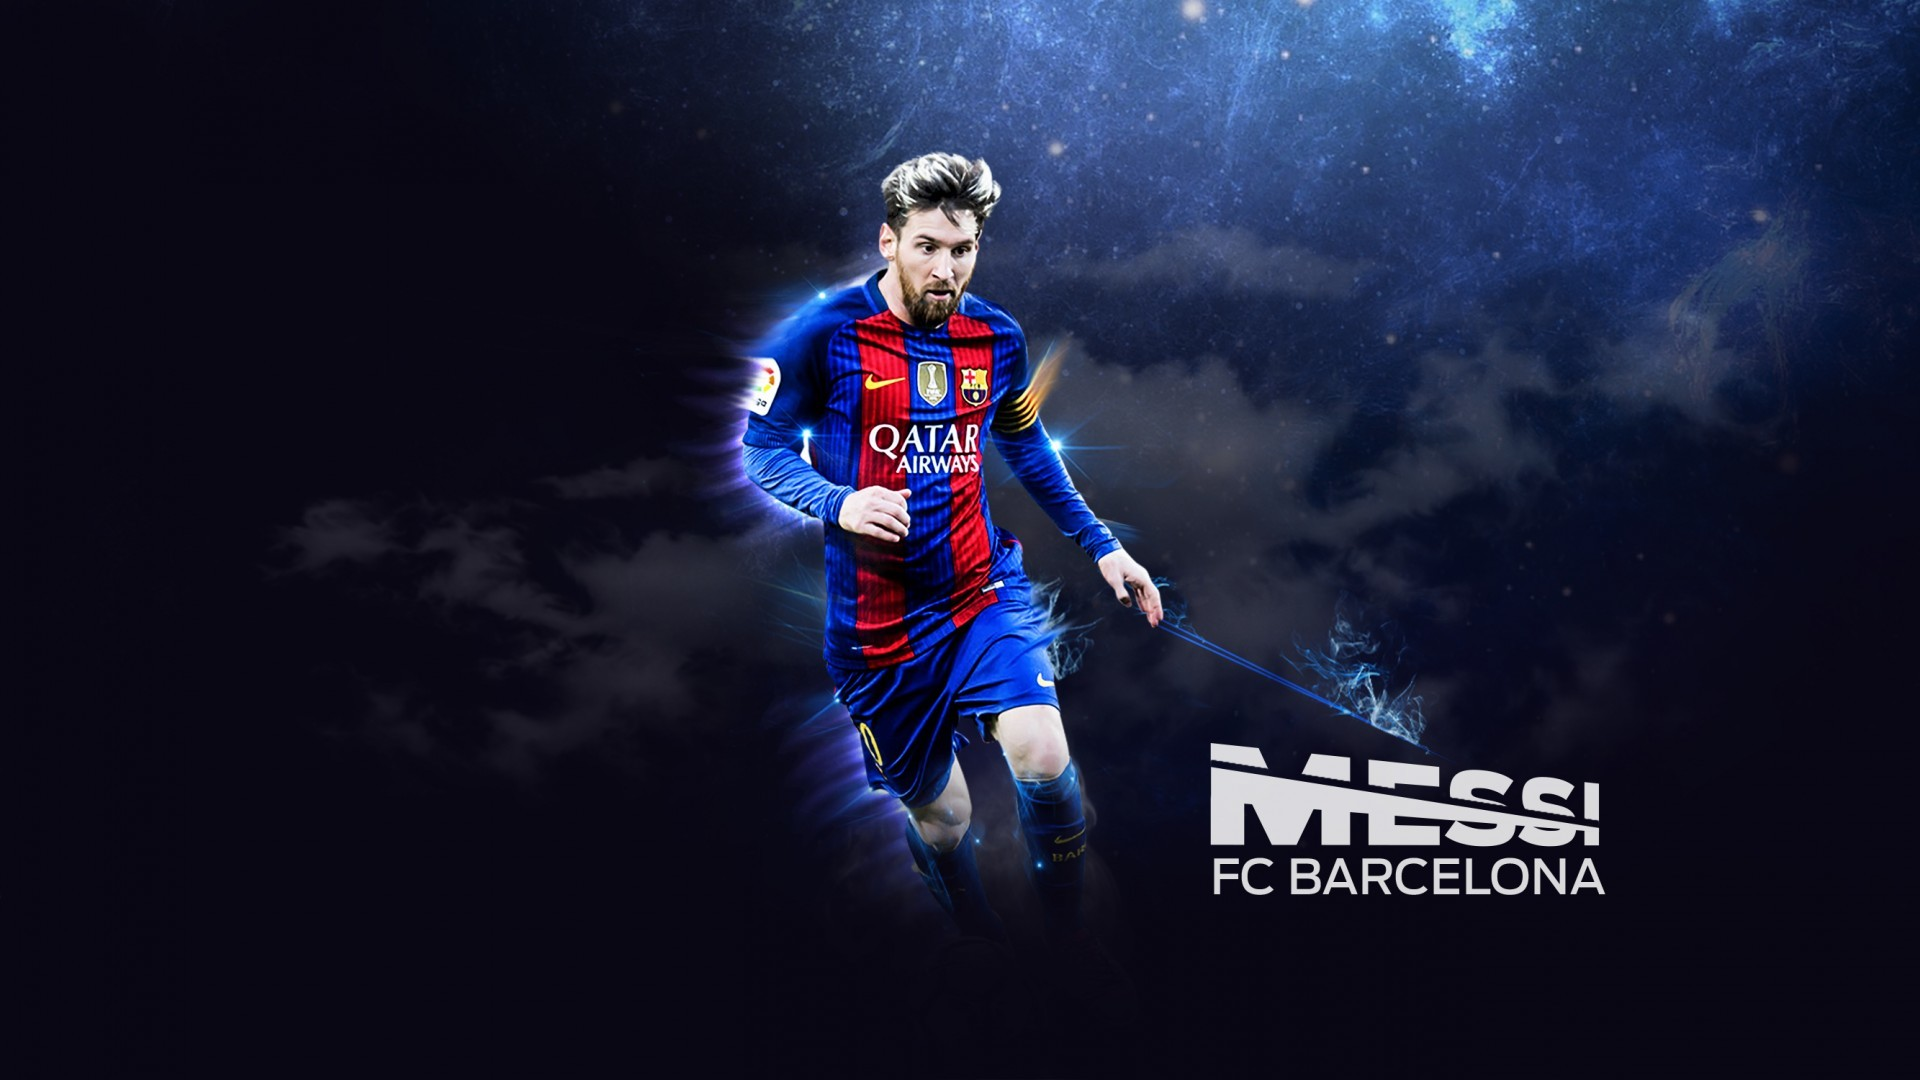 1920x1080 lionel messi hd wallpaper image football  desktop background